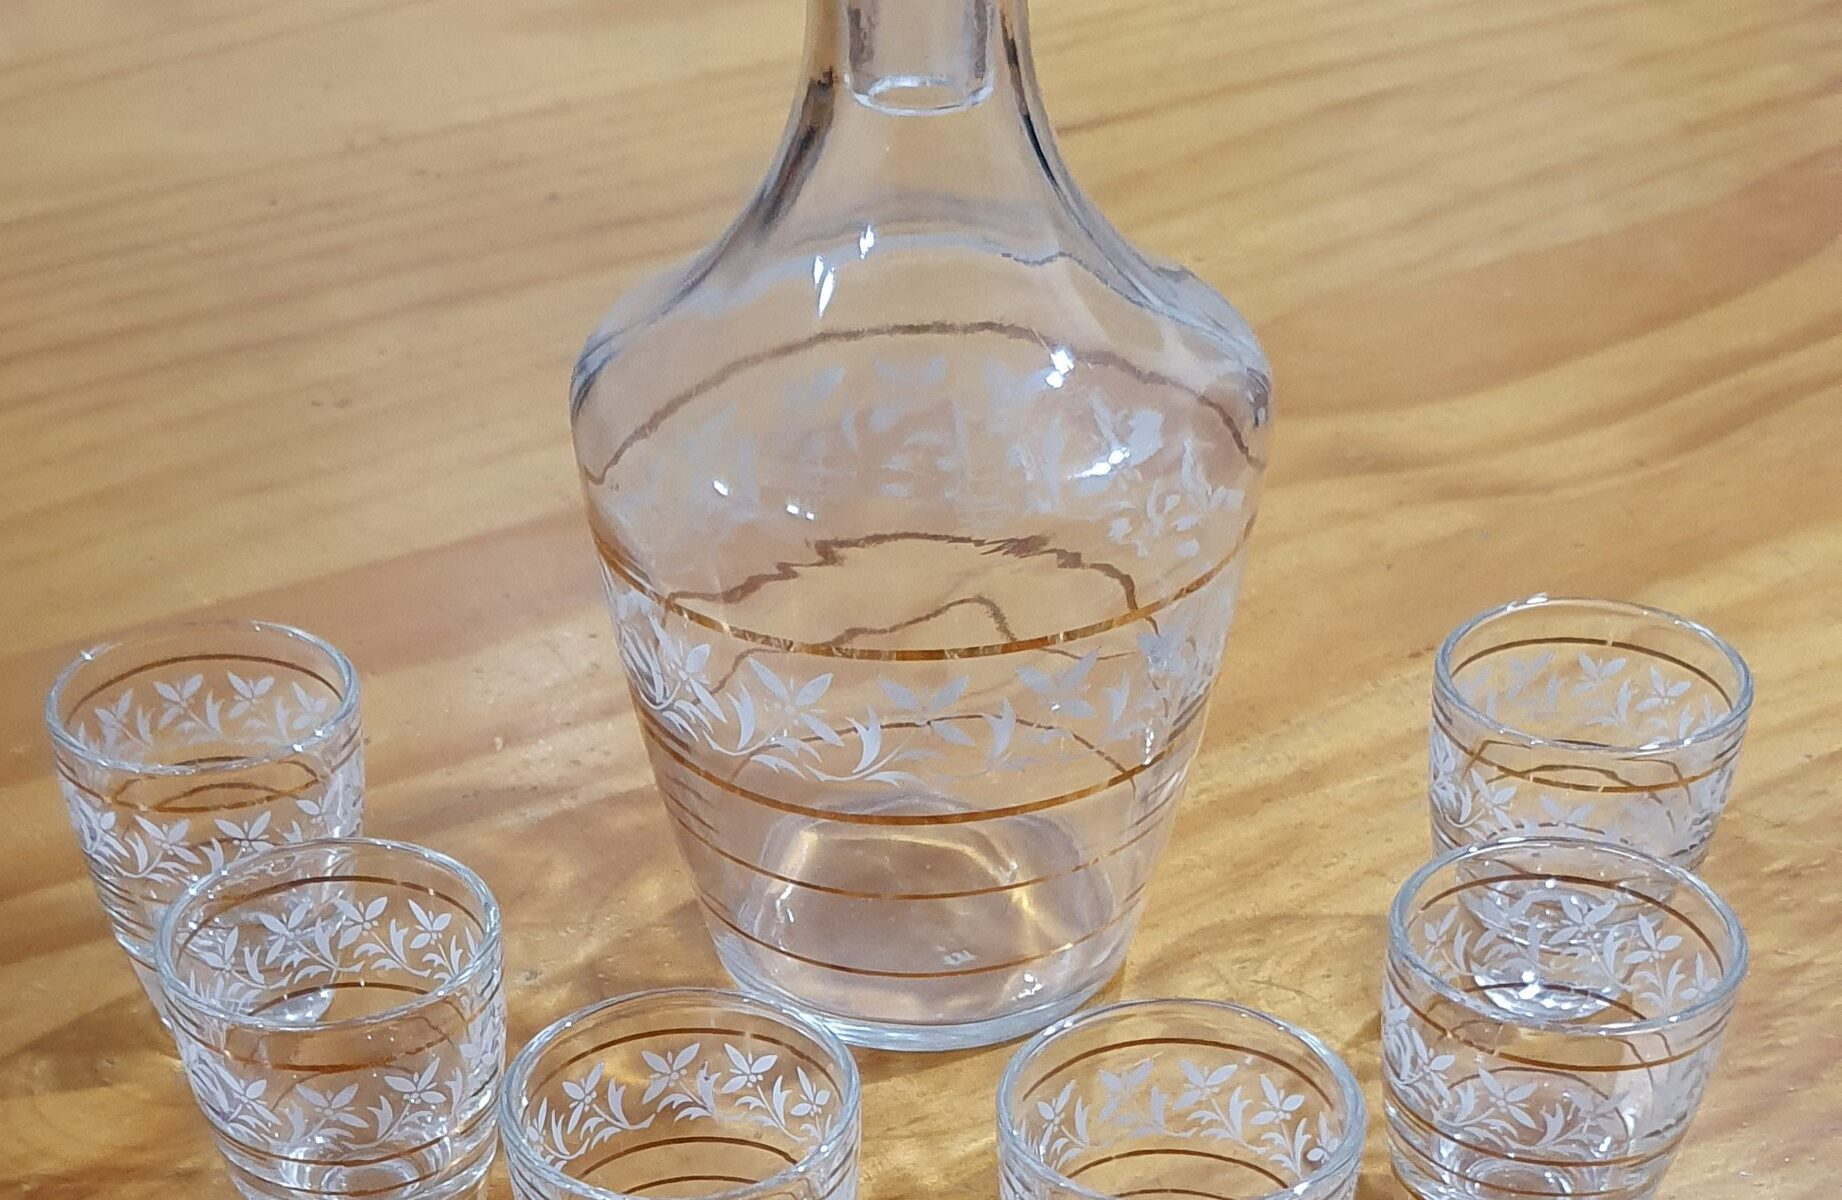 Sherry decanter with six glasses